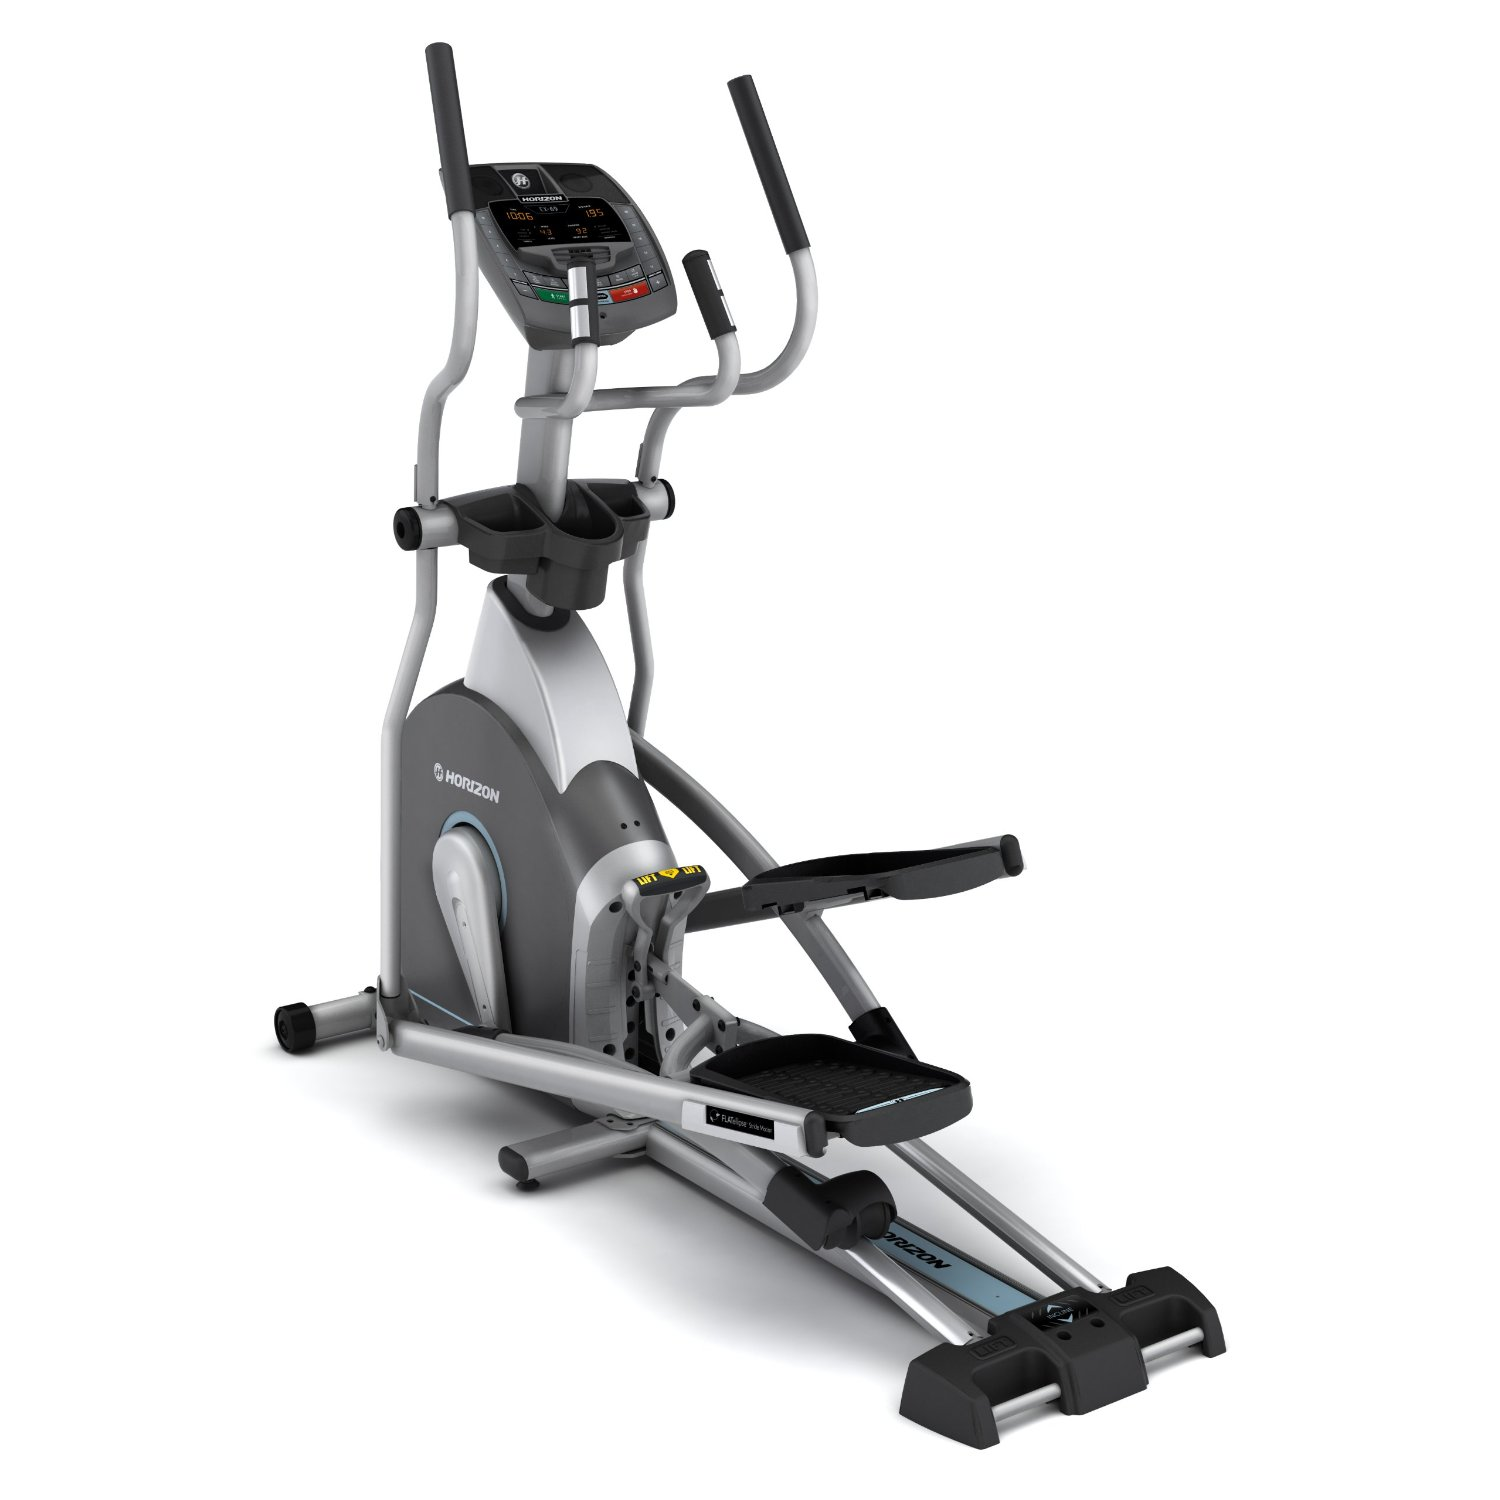 Horizon Elliptical Trainer: Horizon Fitness EX 69-2 Elliptical Trainer Review